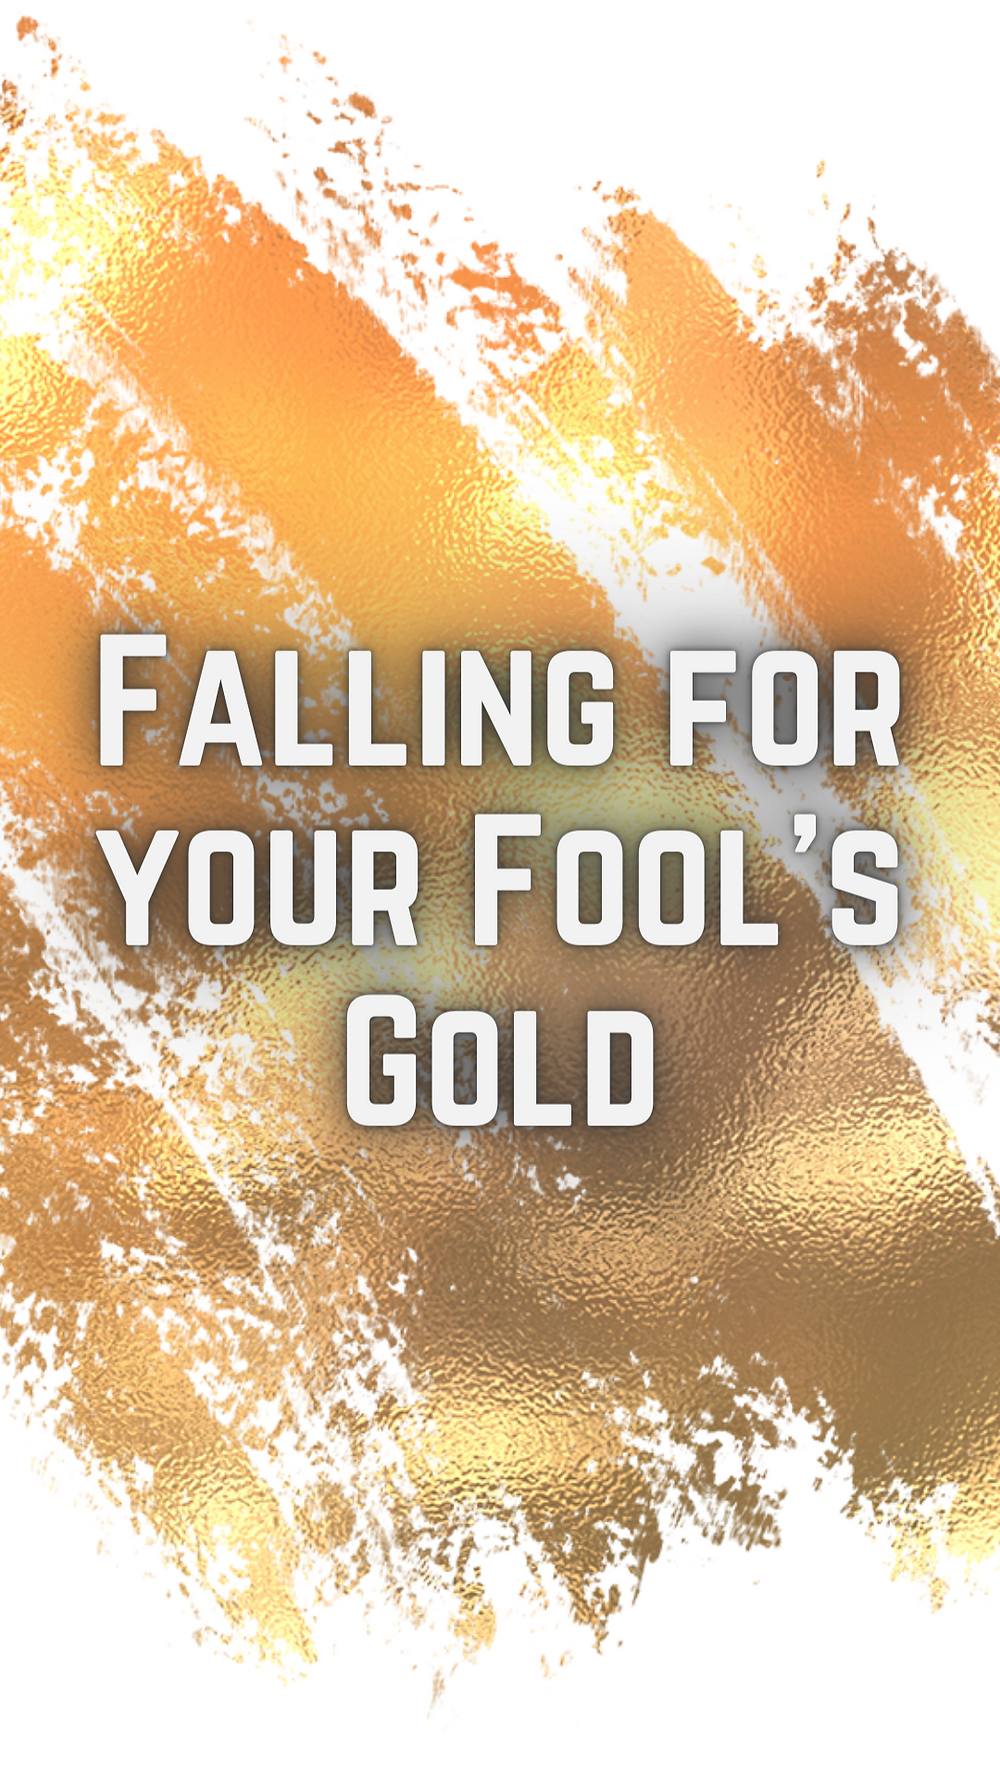 one direction wallpaper fool's gold